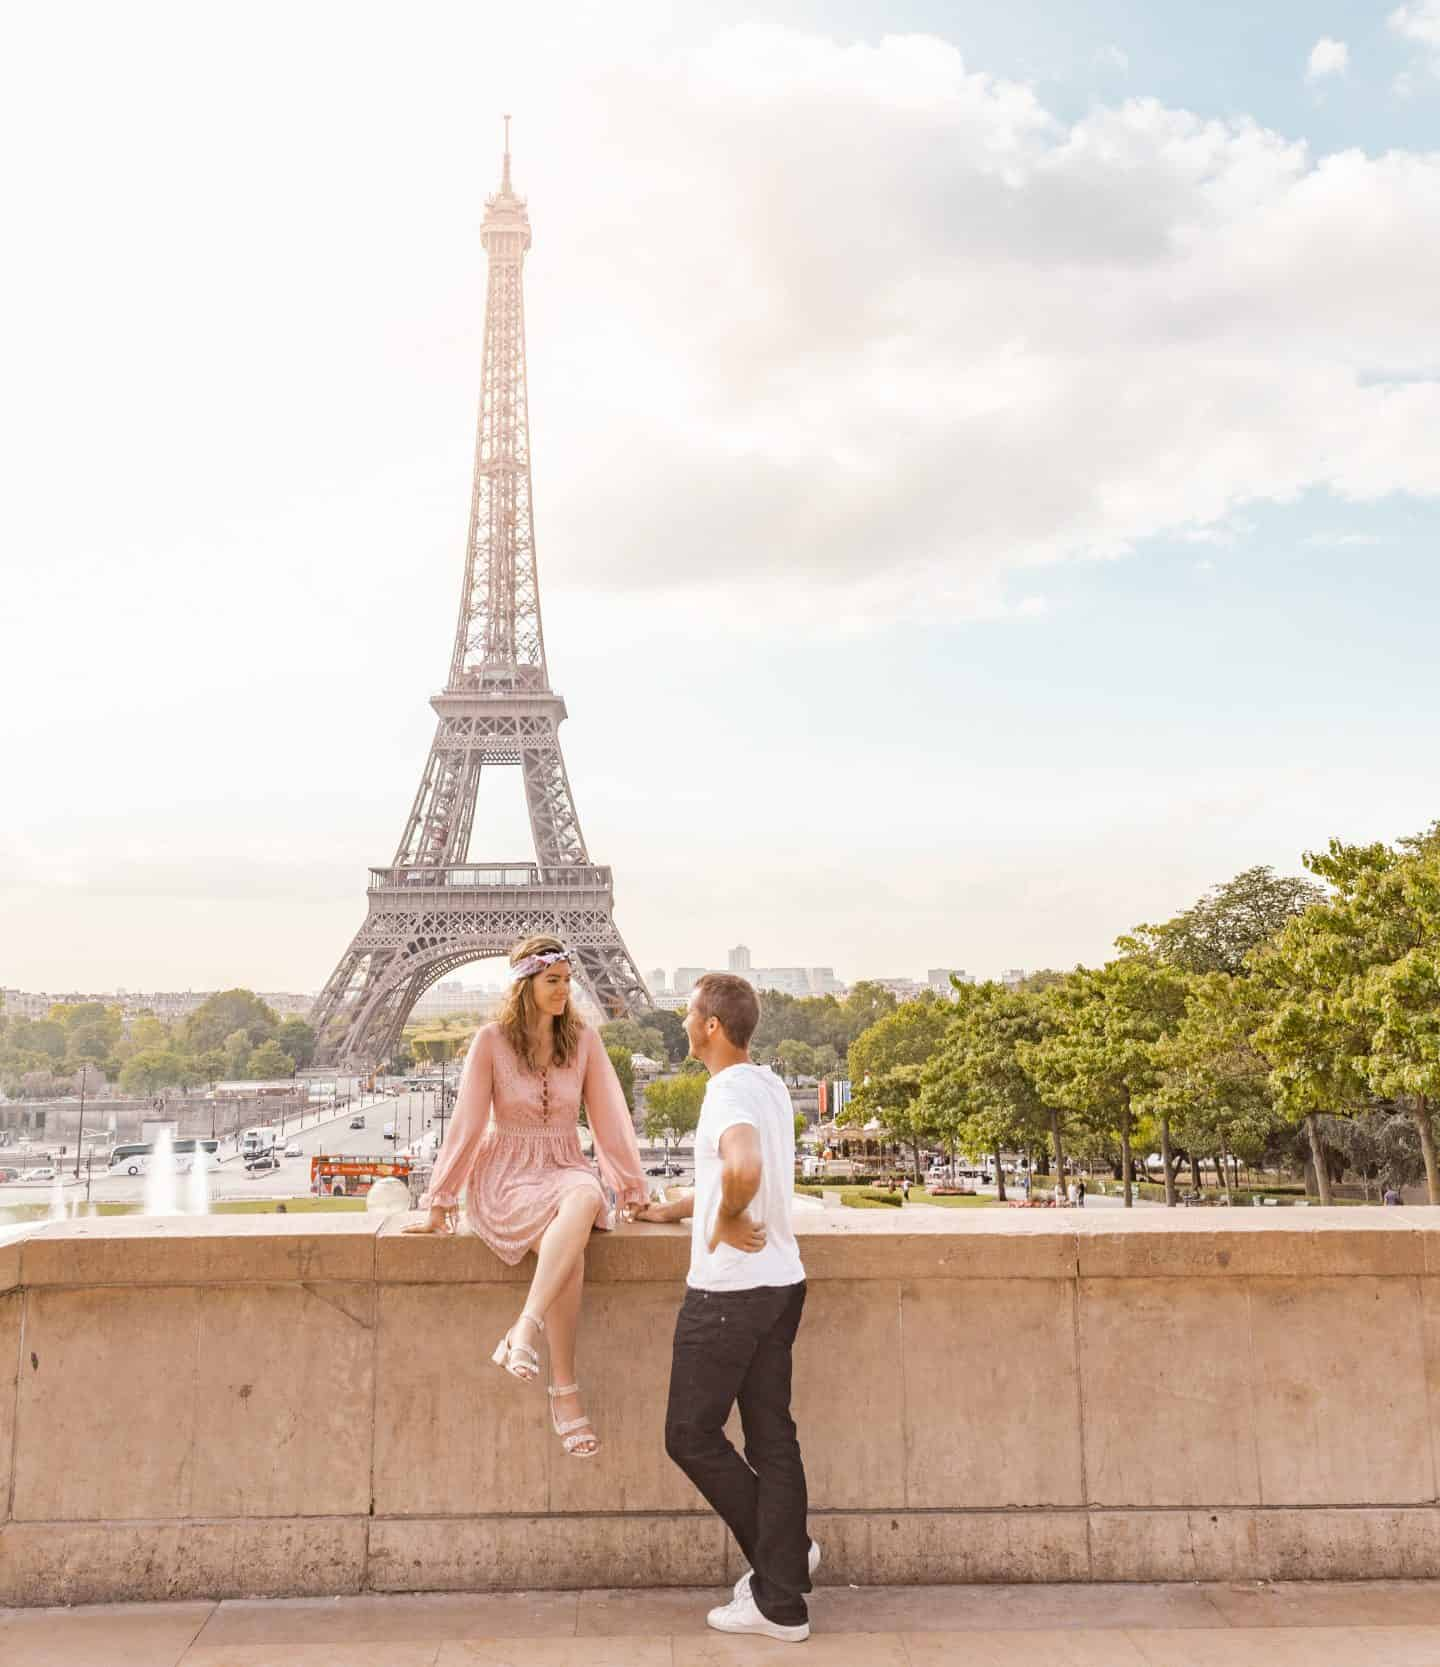 woman in pink dress and man in black denim and white shirt posed together with Eiffel Tower in the background